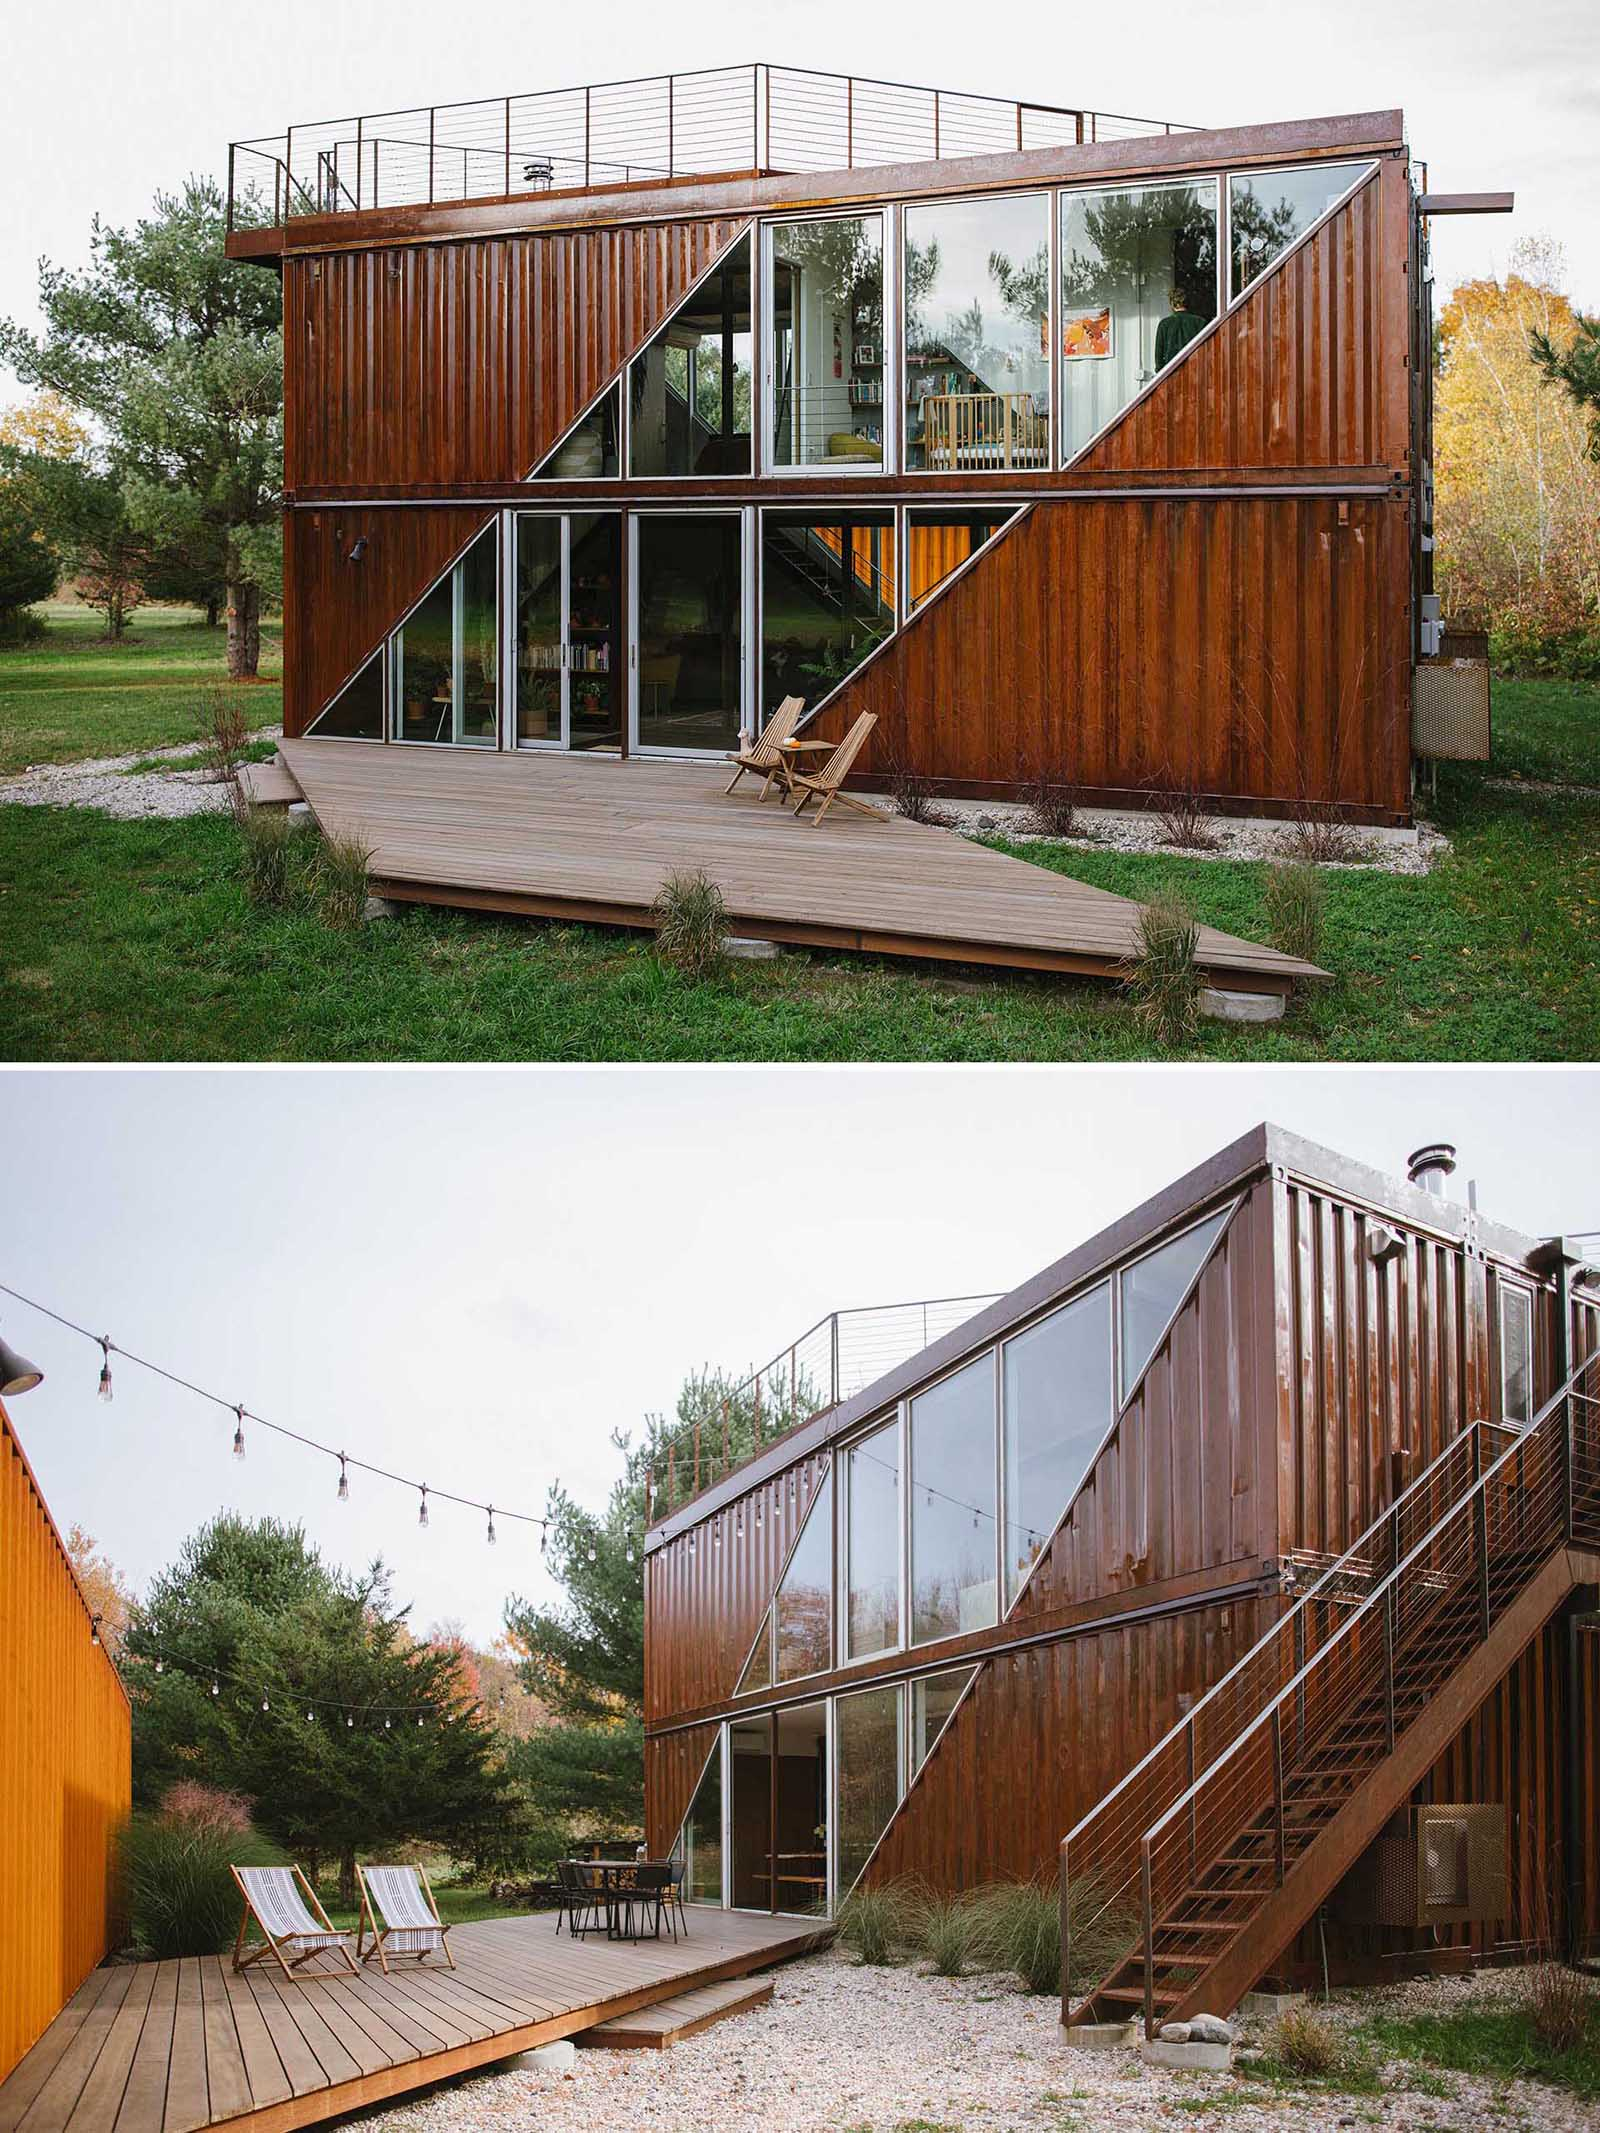 A modern shipping container home with two levels and outdoor decks.